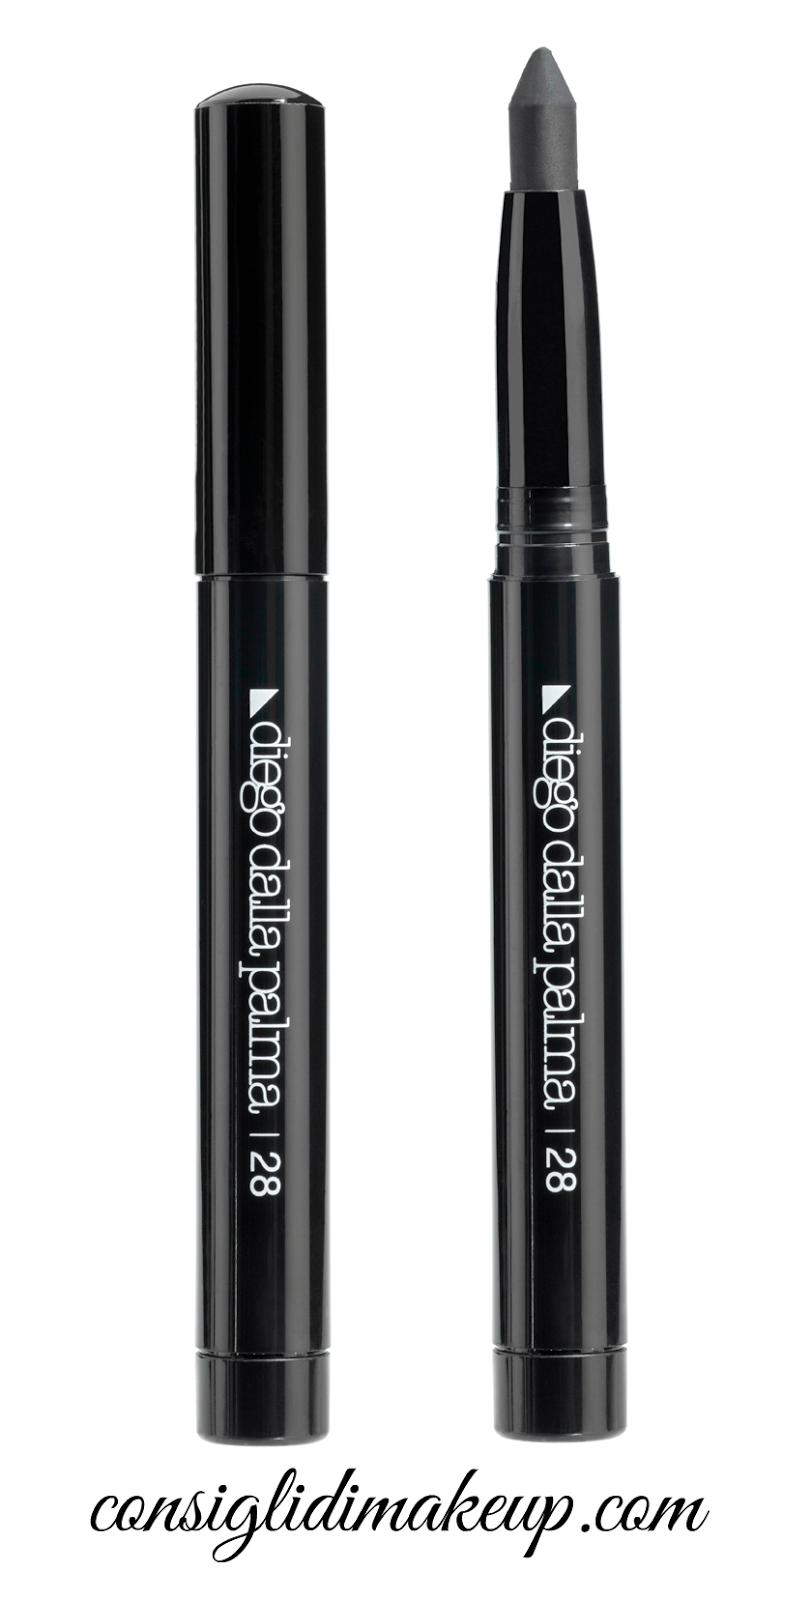 water resistant stick eye shadow diego dalla palma autunno inverno 2014